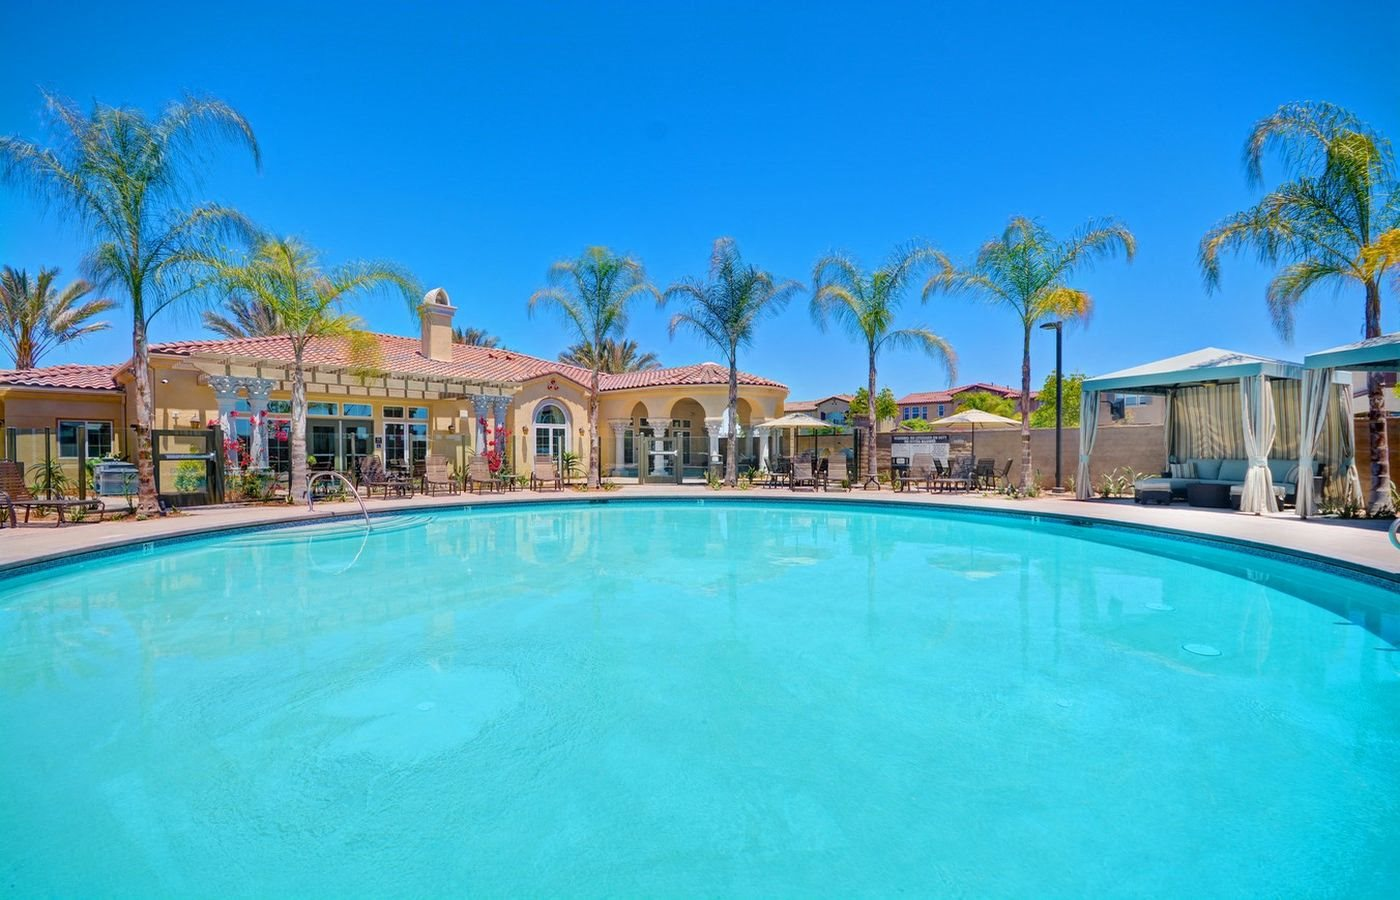 Resort-Style Pool, at Tavera, Chula Vista, CA